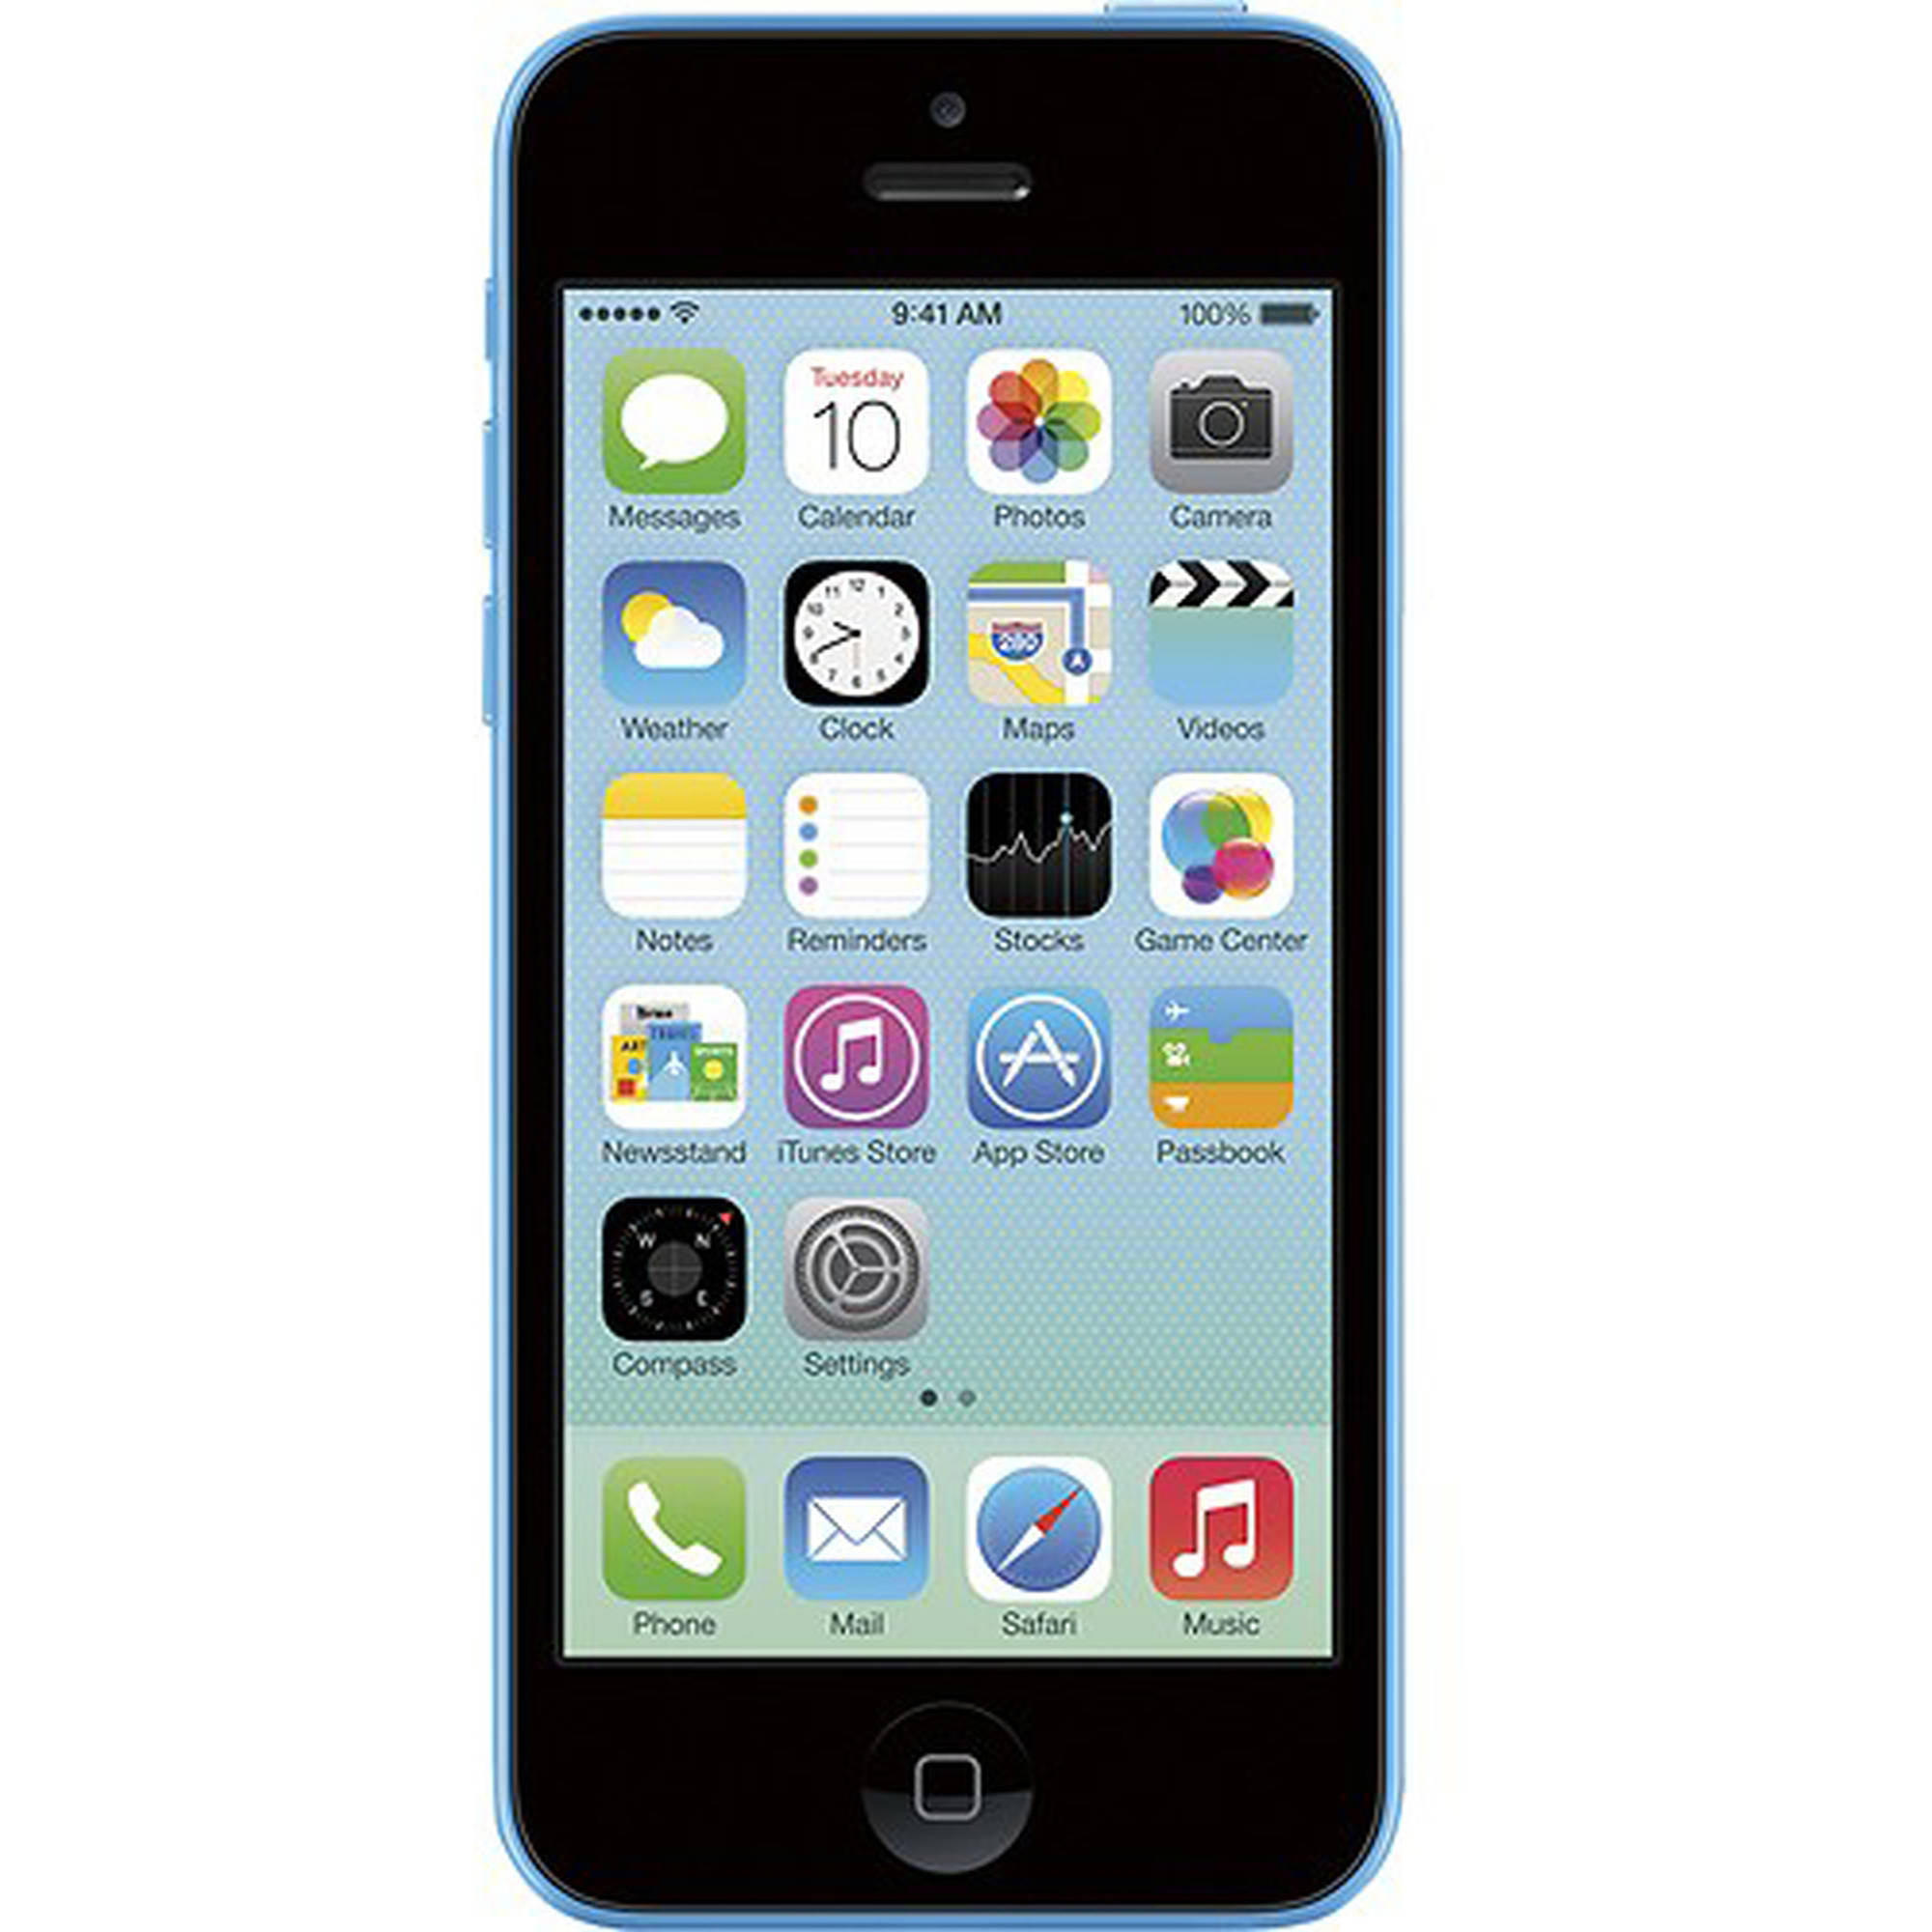 Refurbished Apple iPhone 5c 16GB, Blue - Unlocked GSM